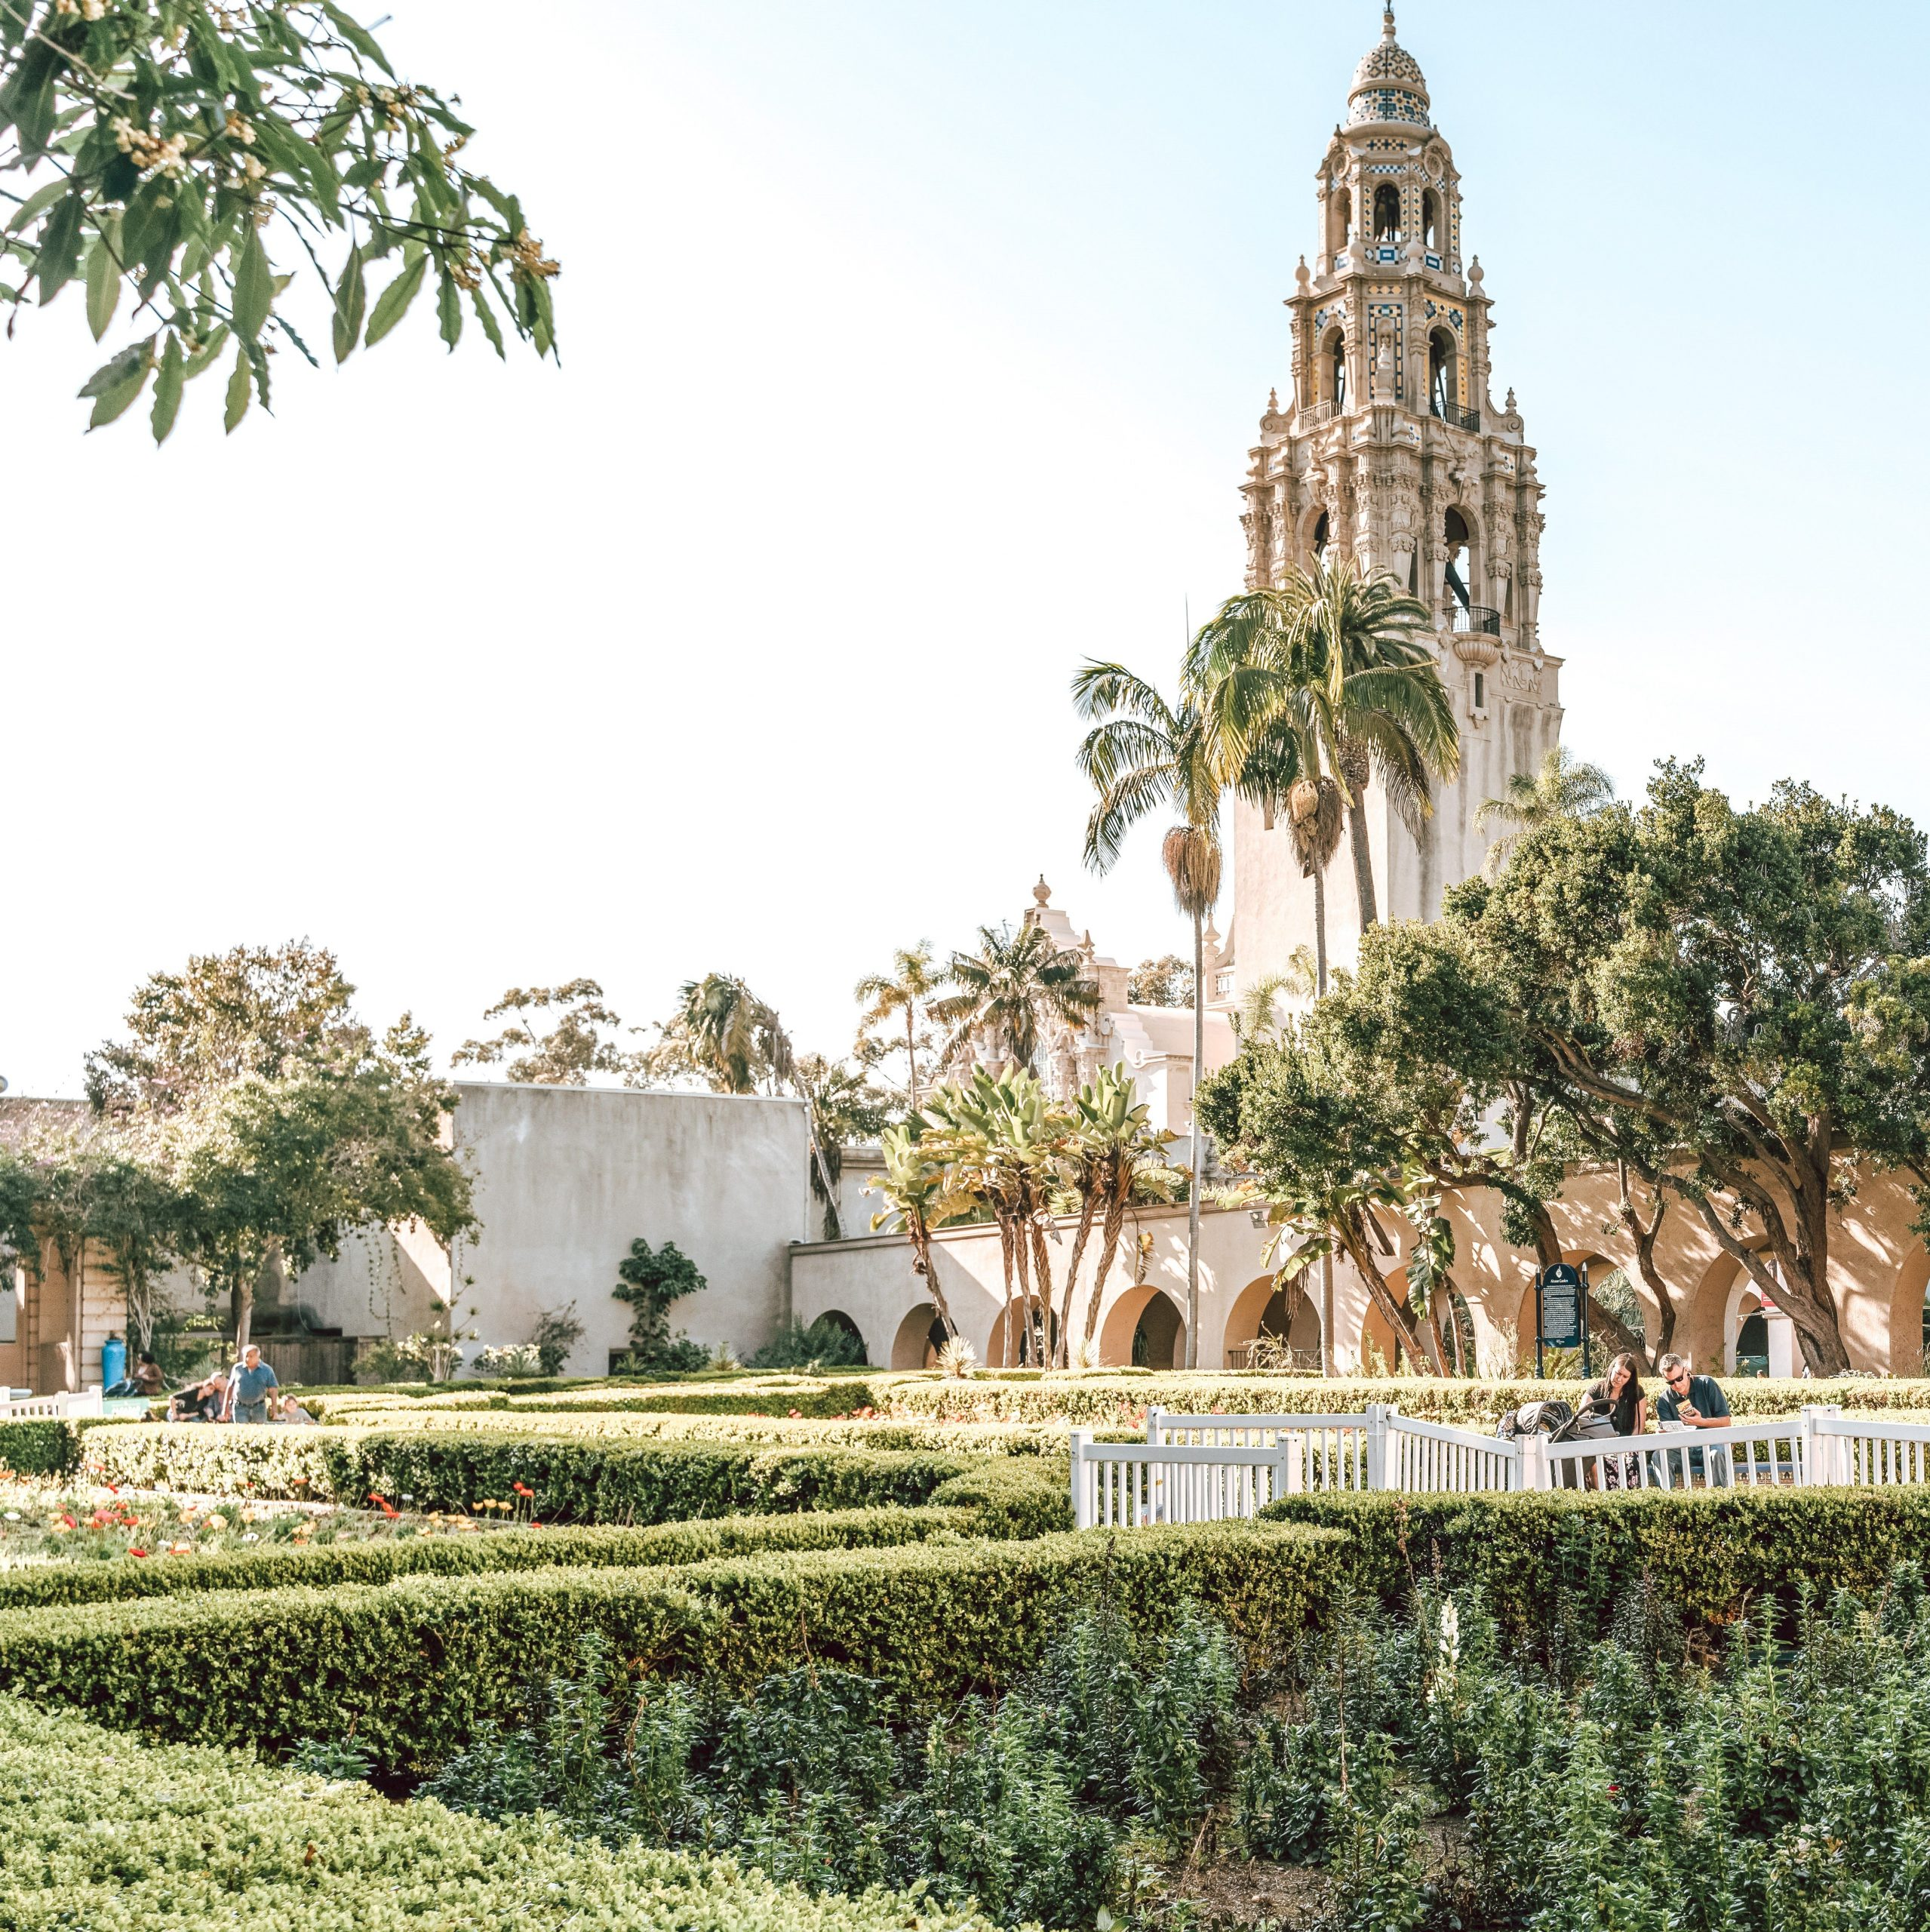 You can spend a day or more discovering Balboa park on your girls' getaway in San Diego.